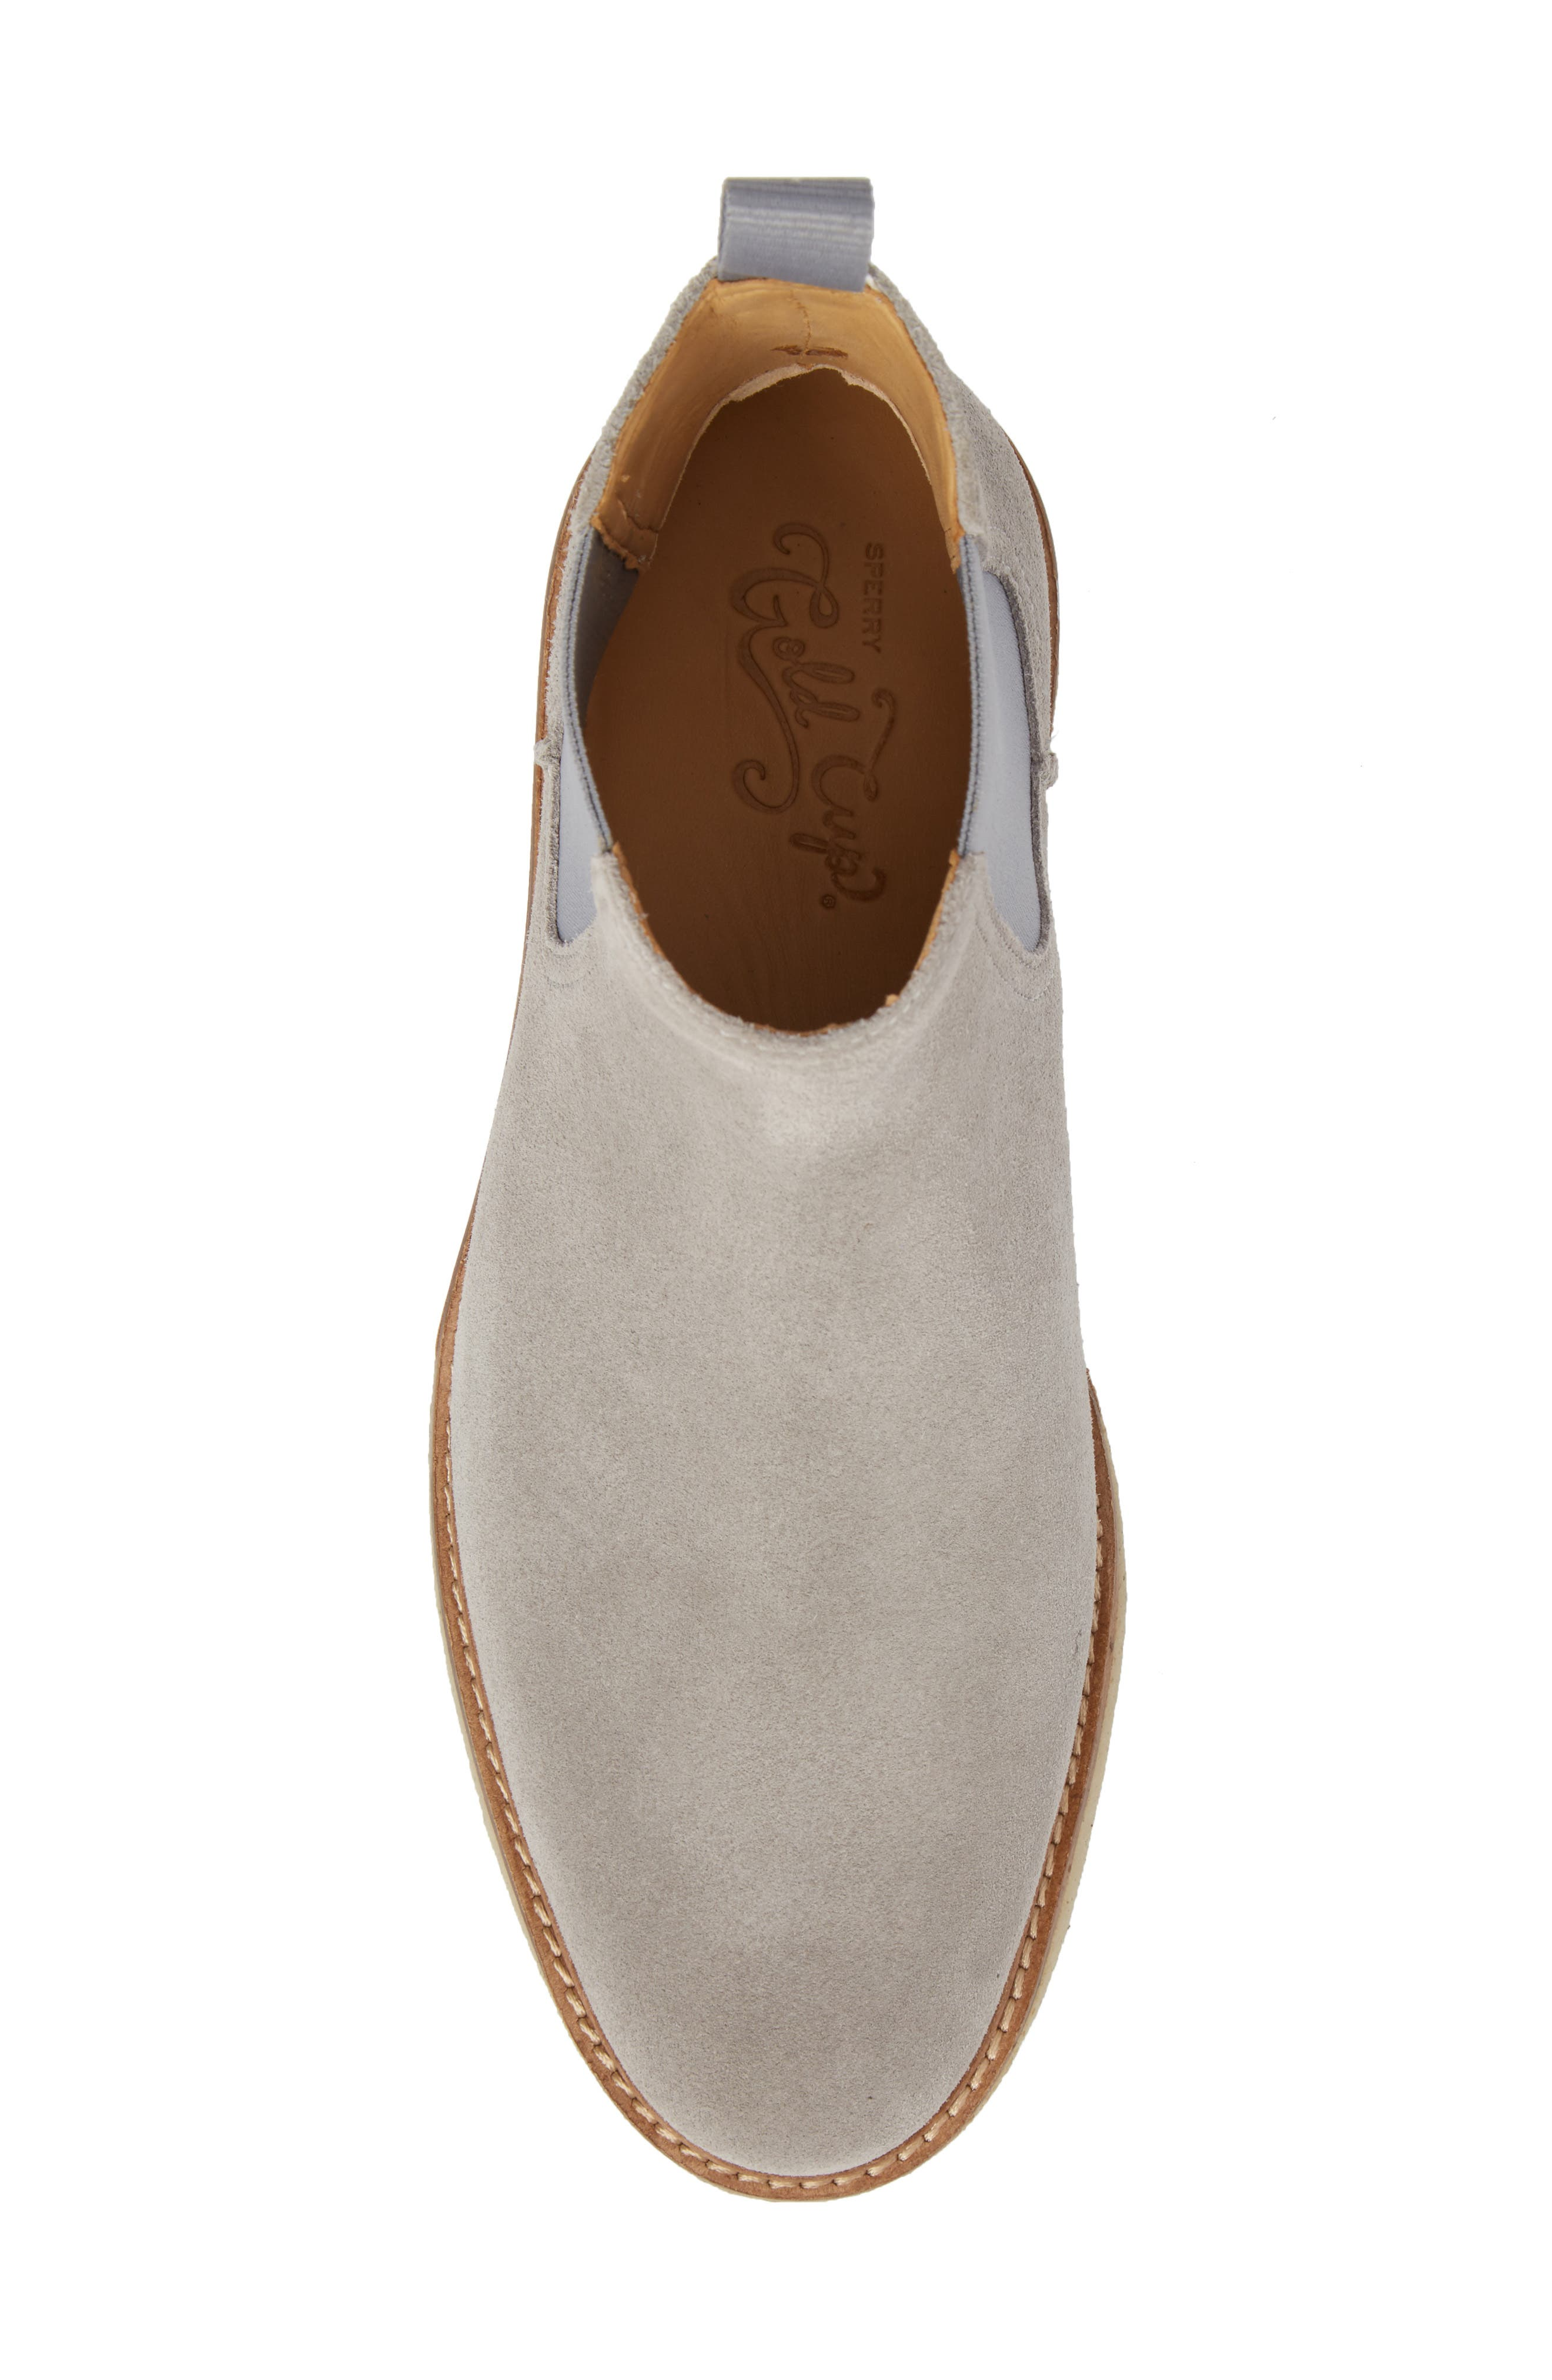 Gold Cup Crepe Chelsea Boot,                             Alternate thumbnail 5, color,                             Grey Leather/ Suede